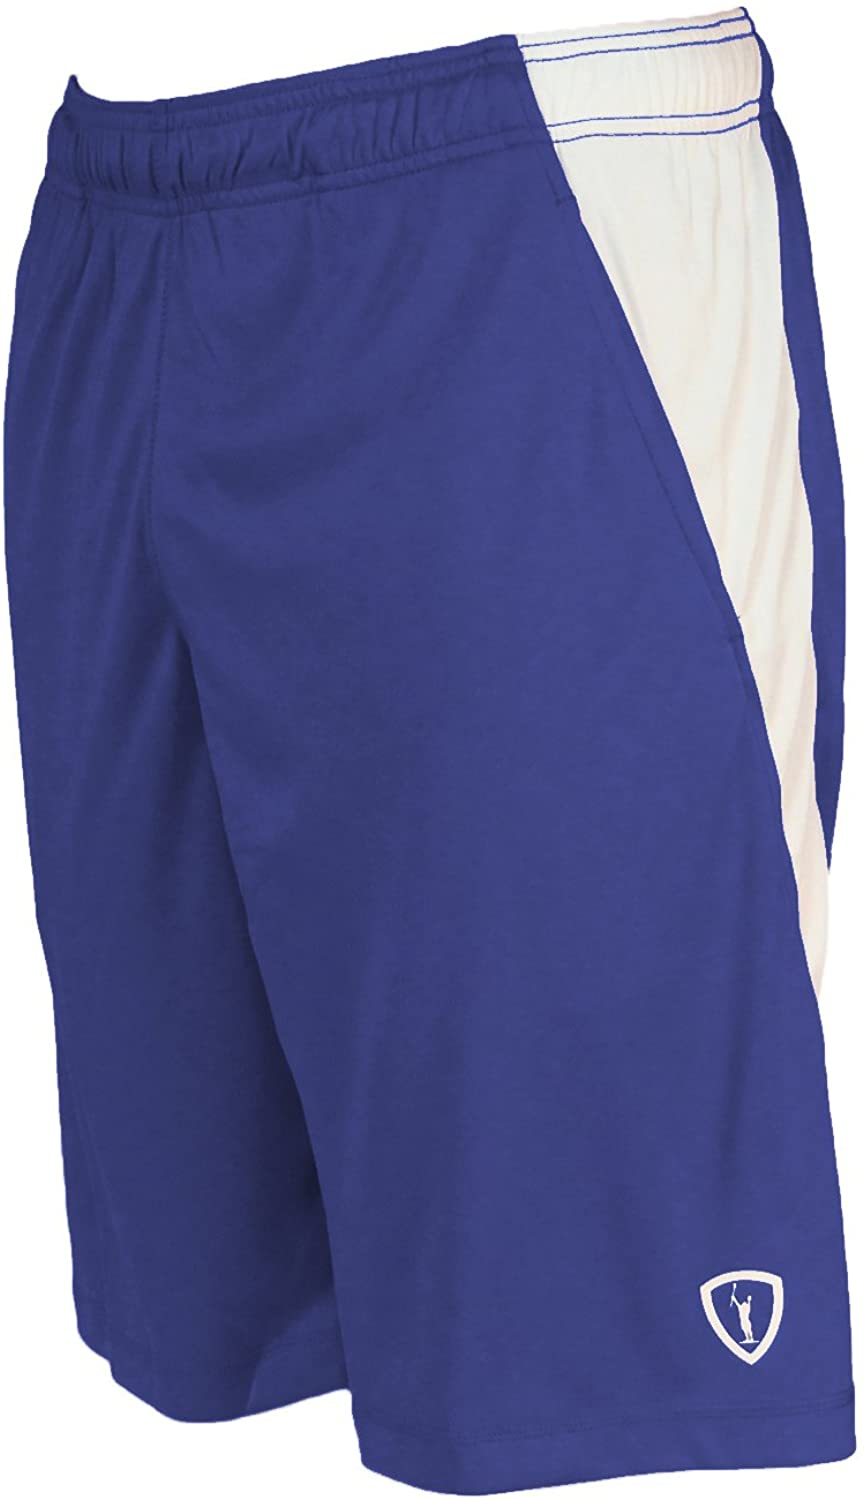 Adrenaline Lacrosse D.I.All Youth Shorts - Navy